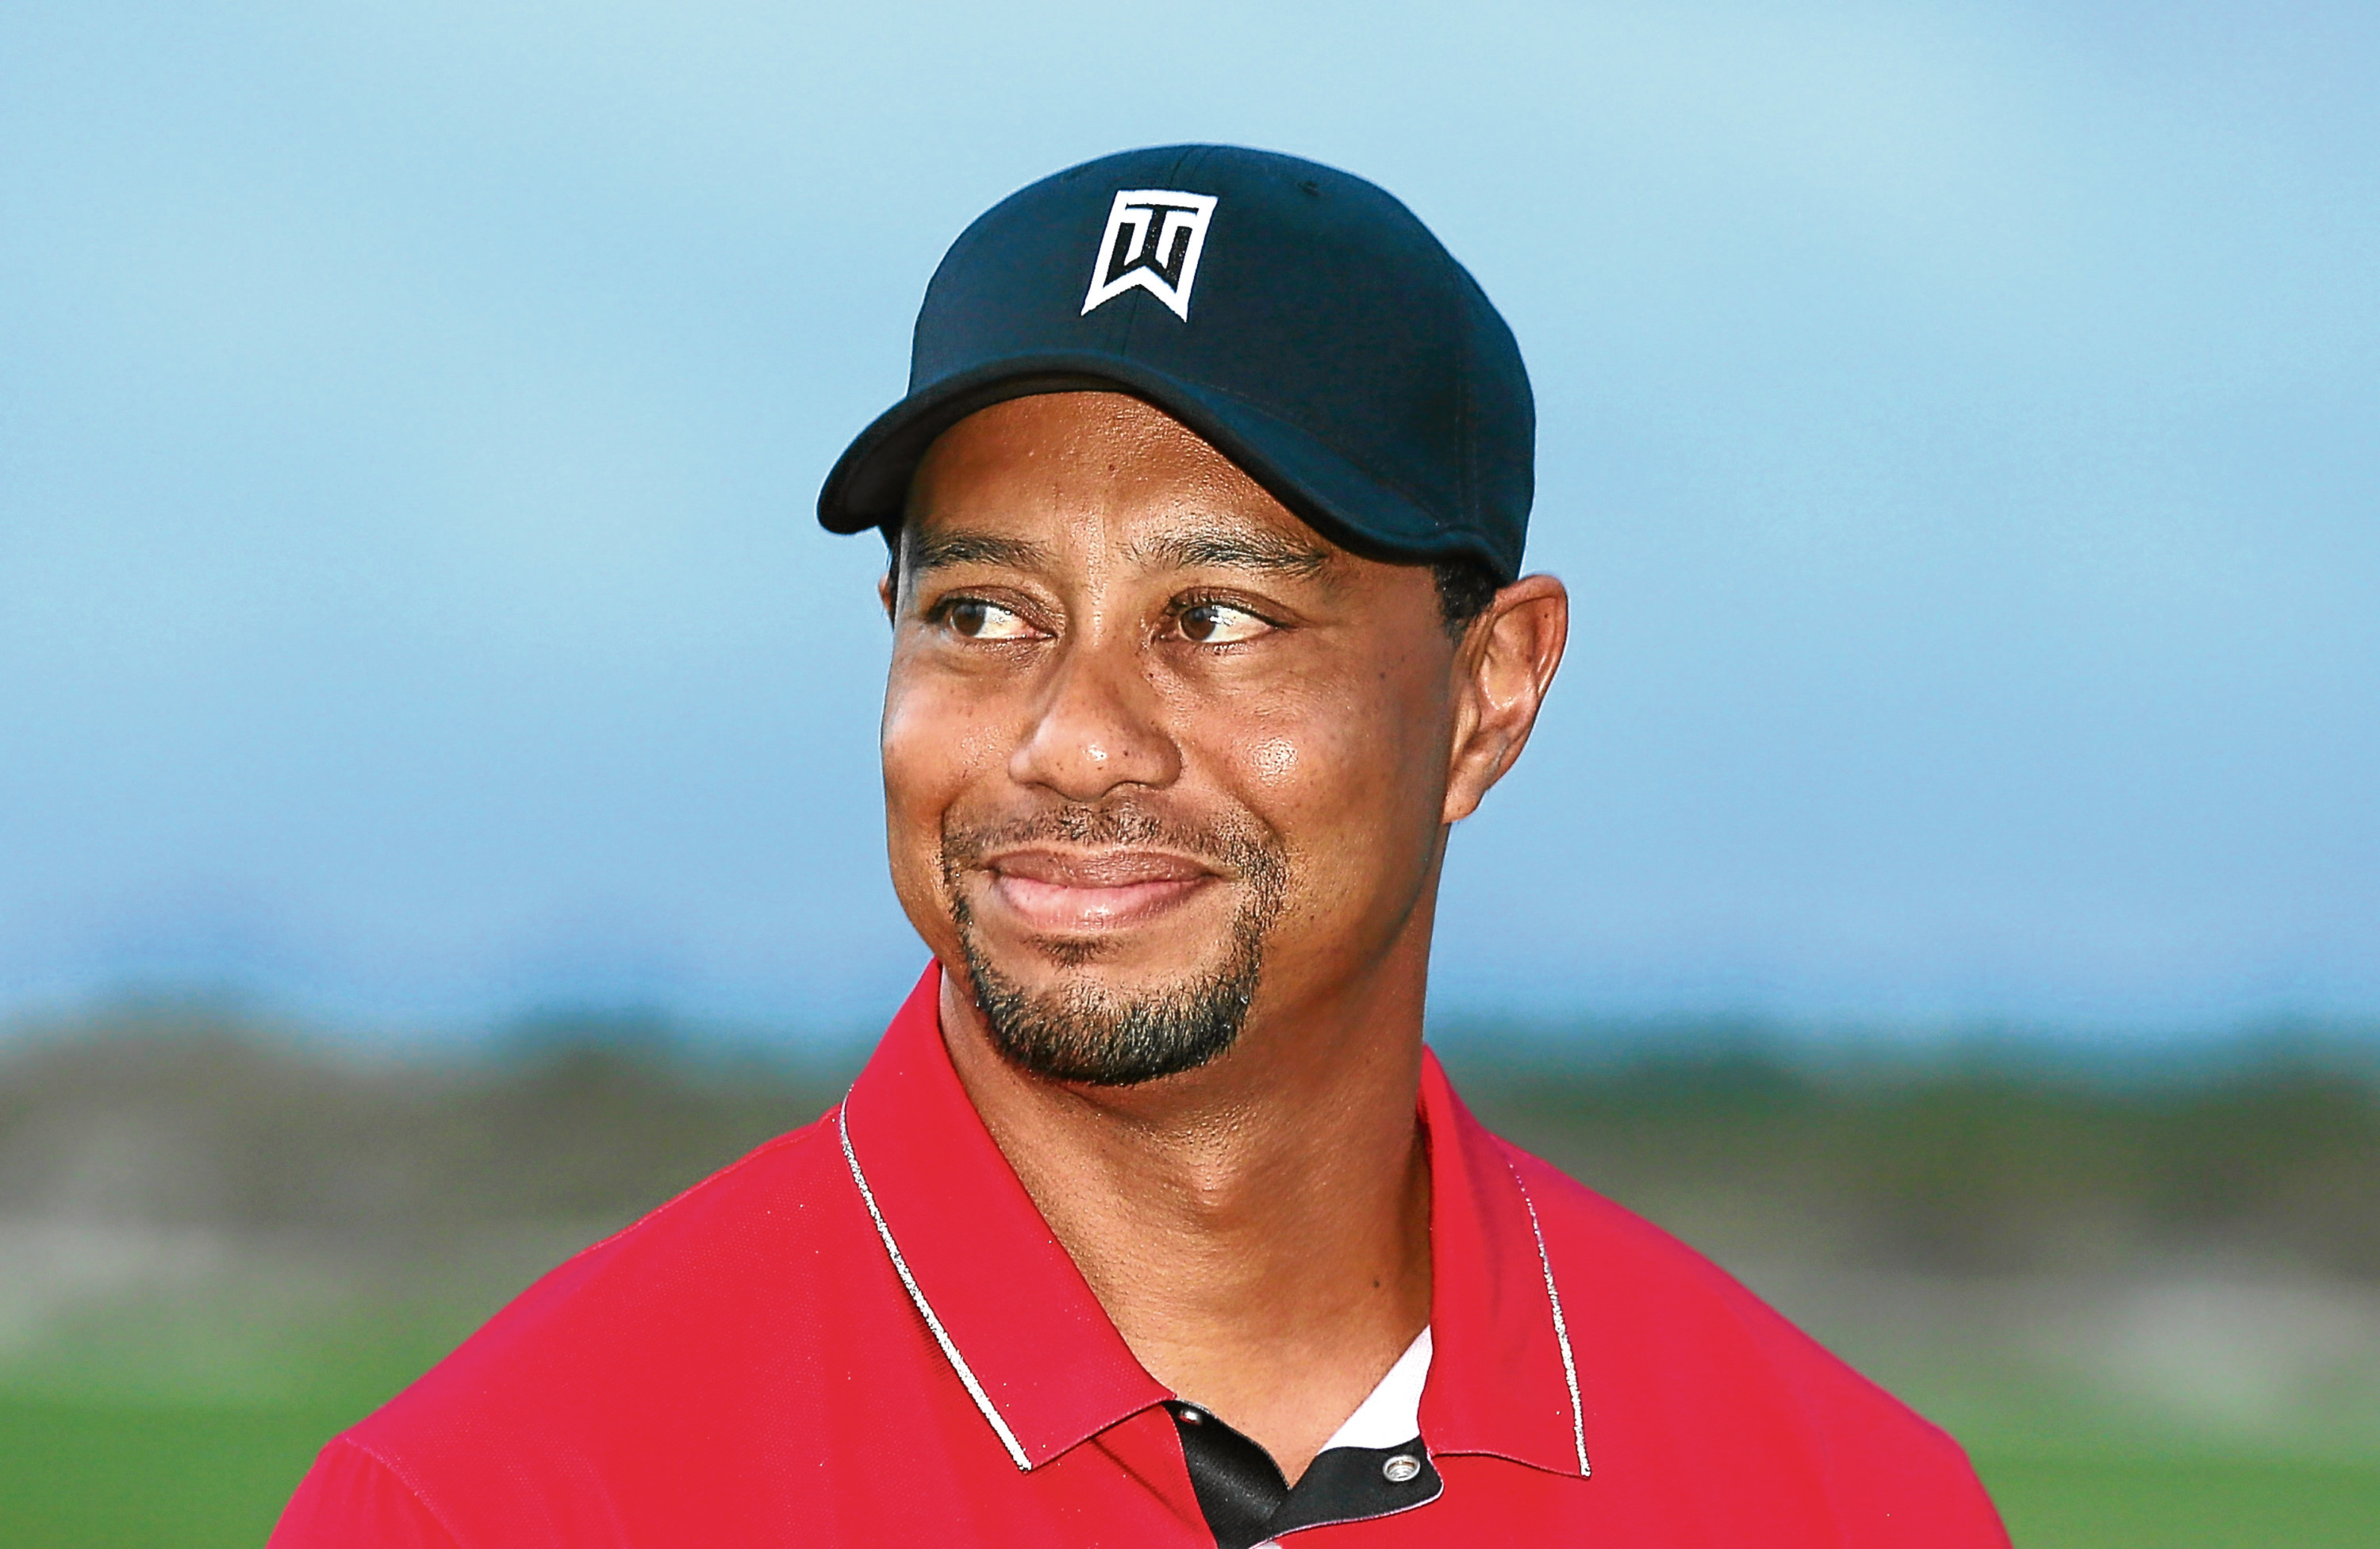 Tiger Woods is smiling again.